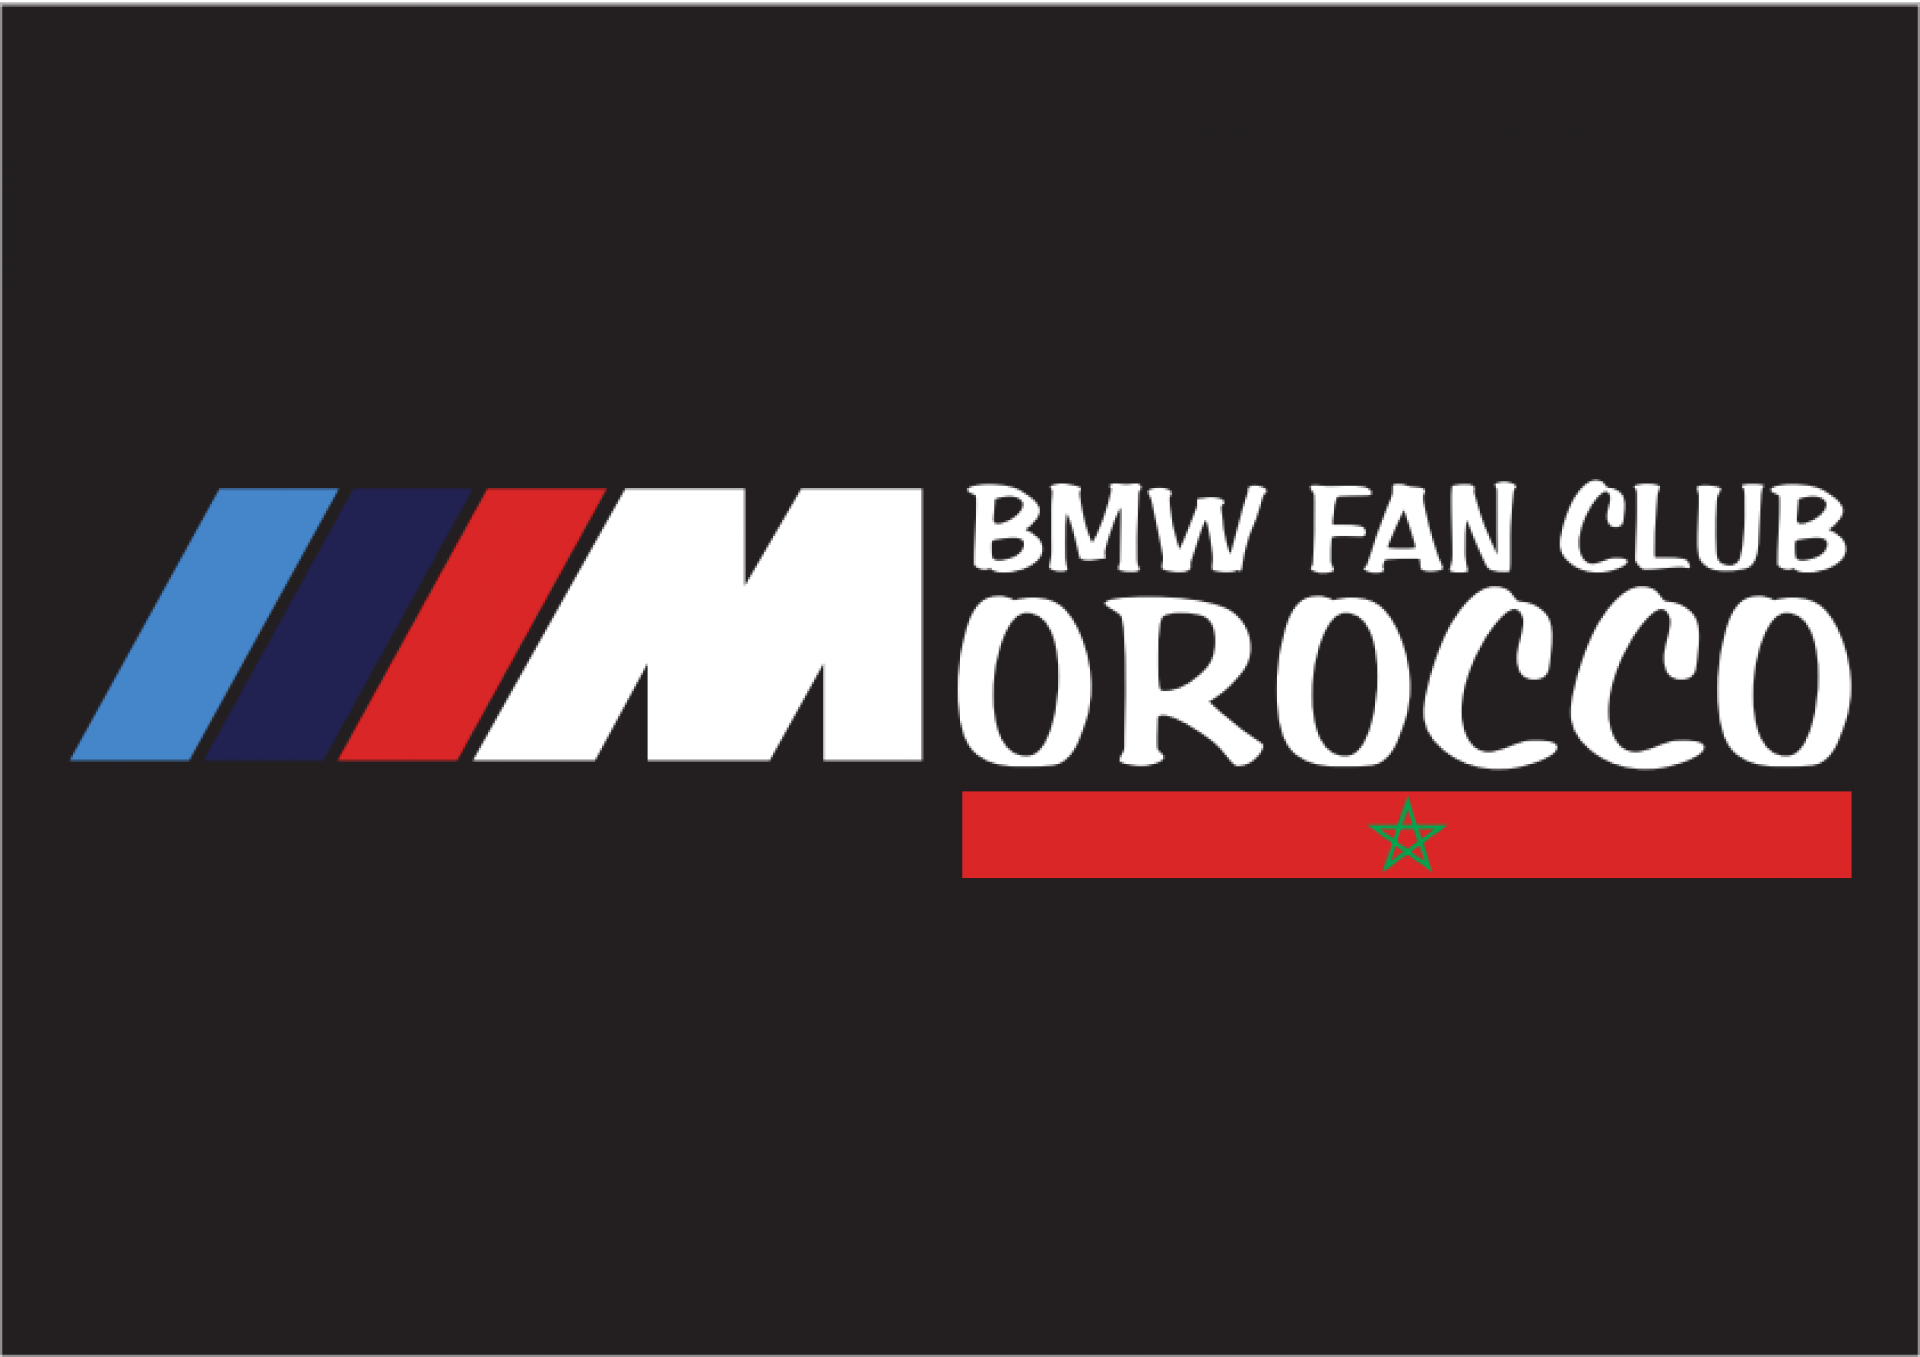 Association BMW Fan Club Morocco (BFCM) logo